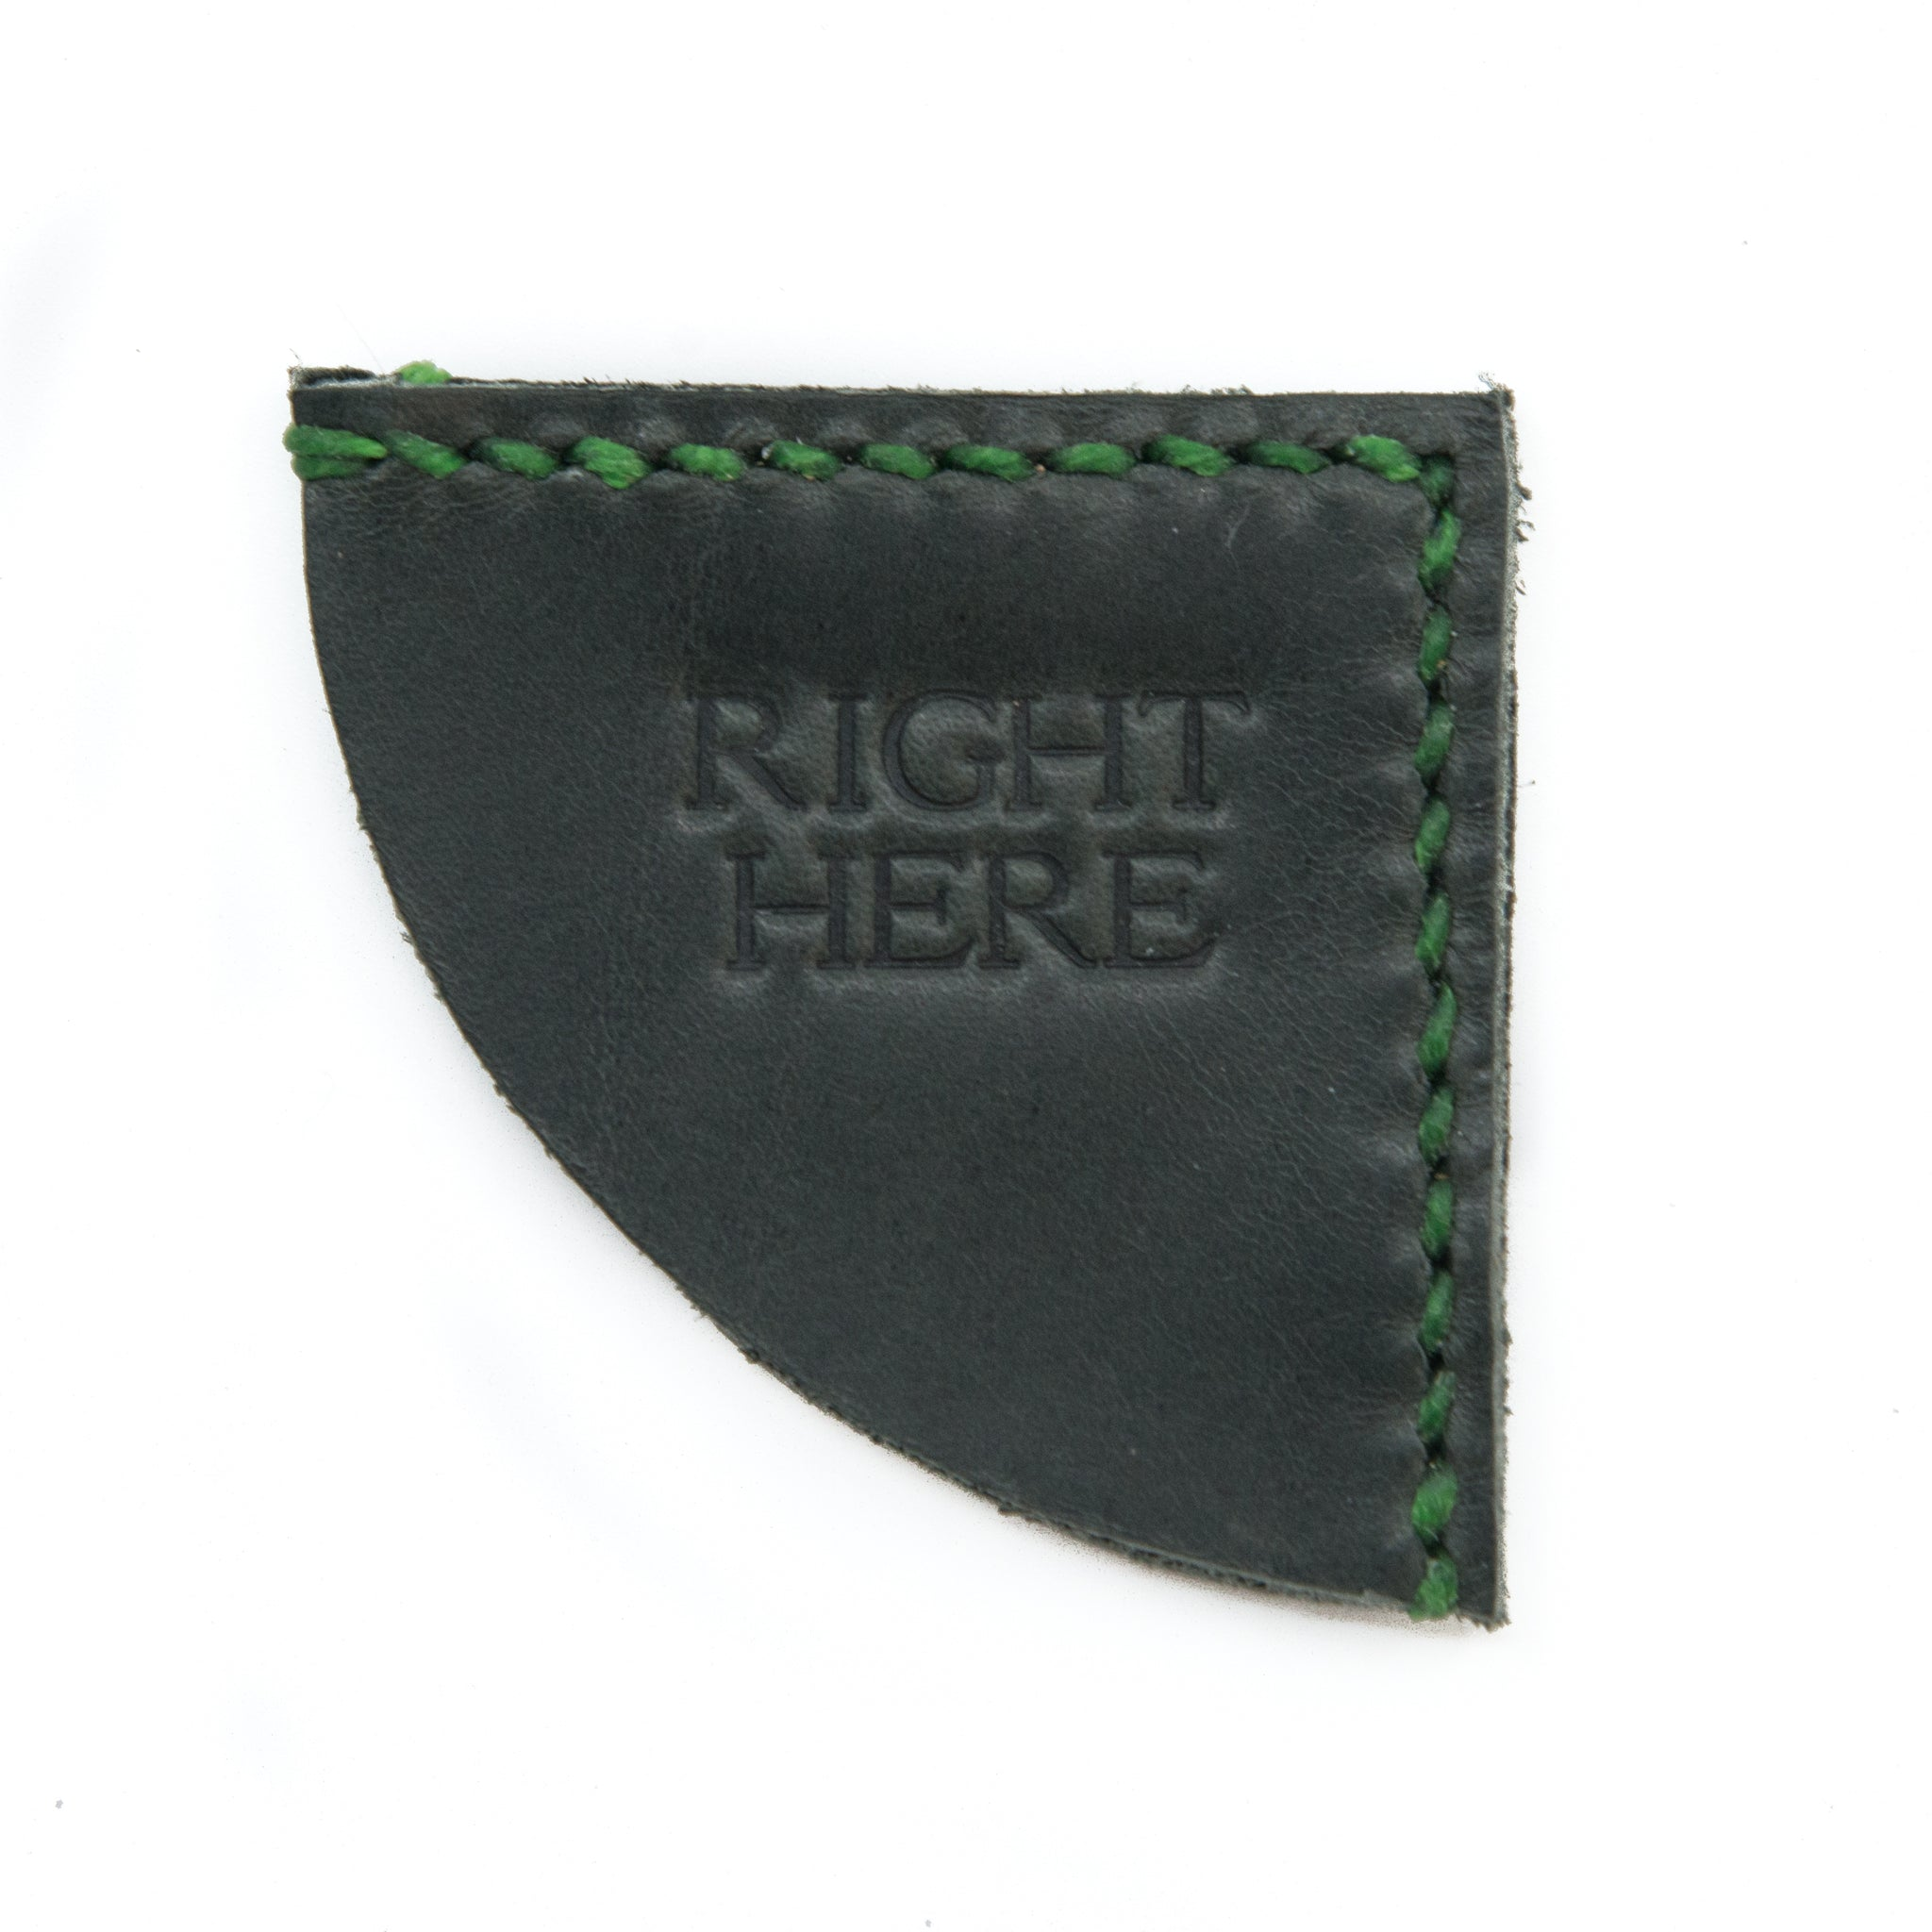 Leather Bookmark - Right Here